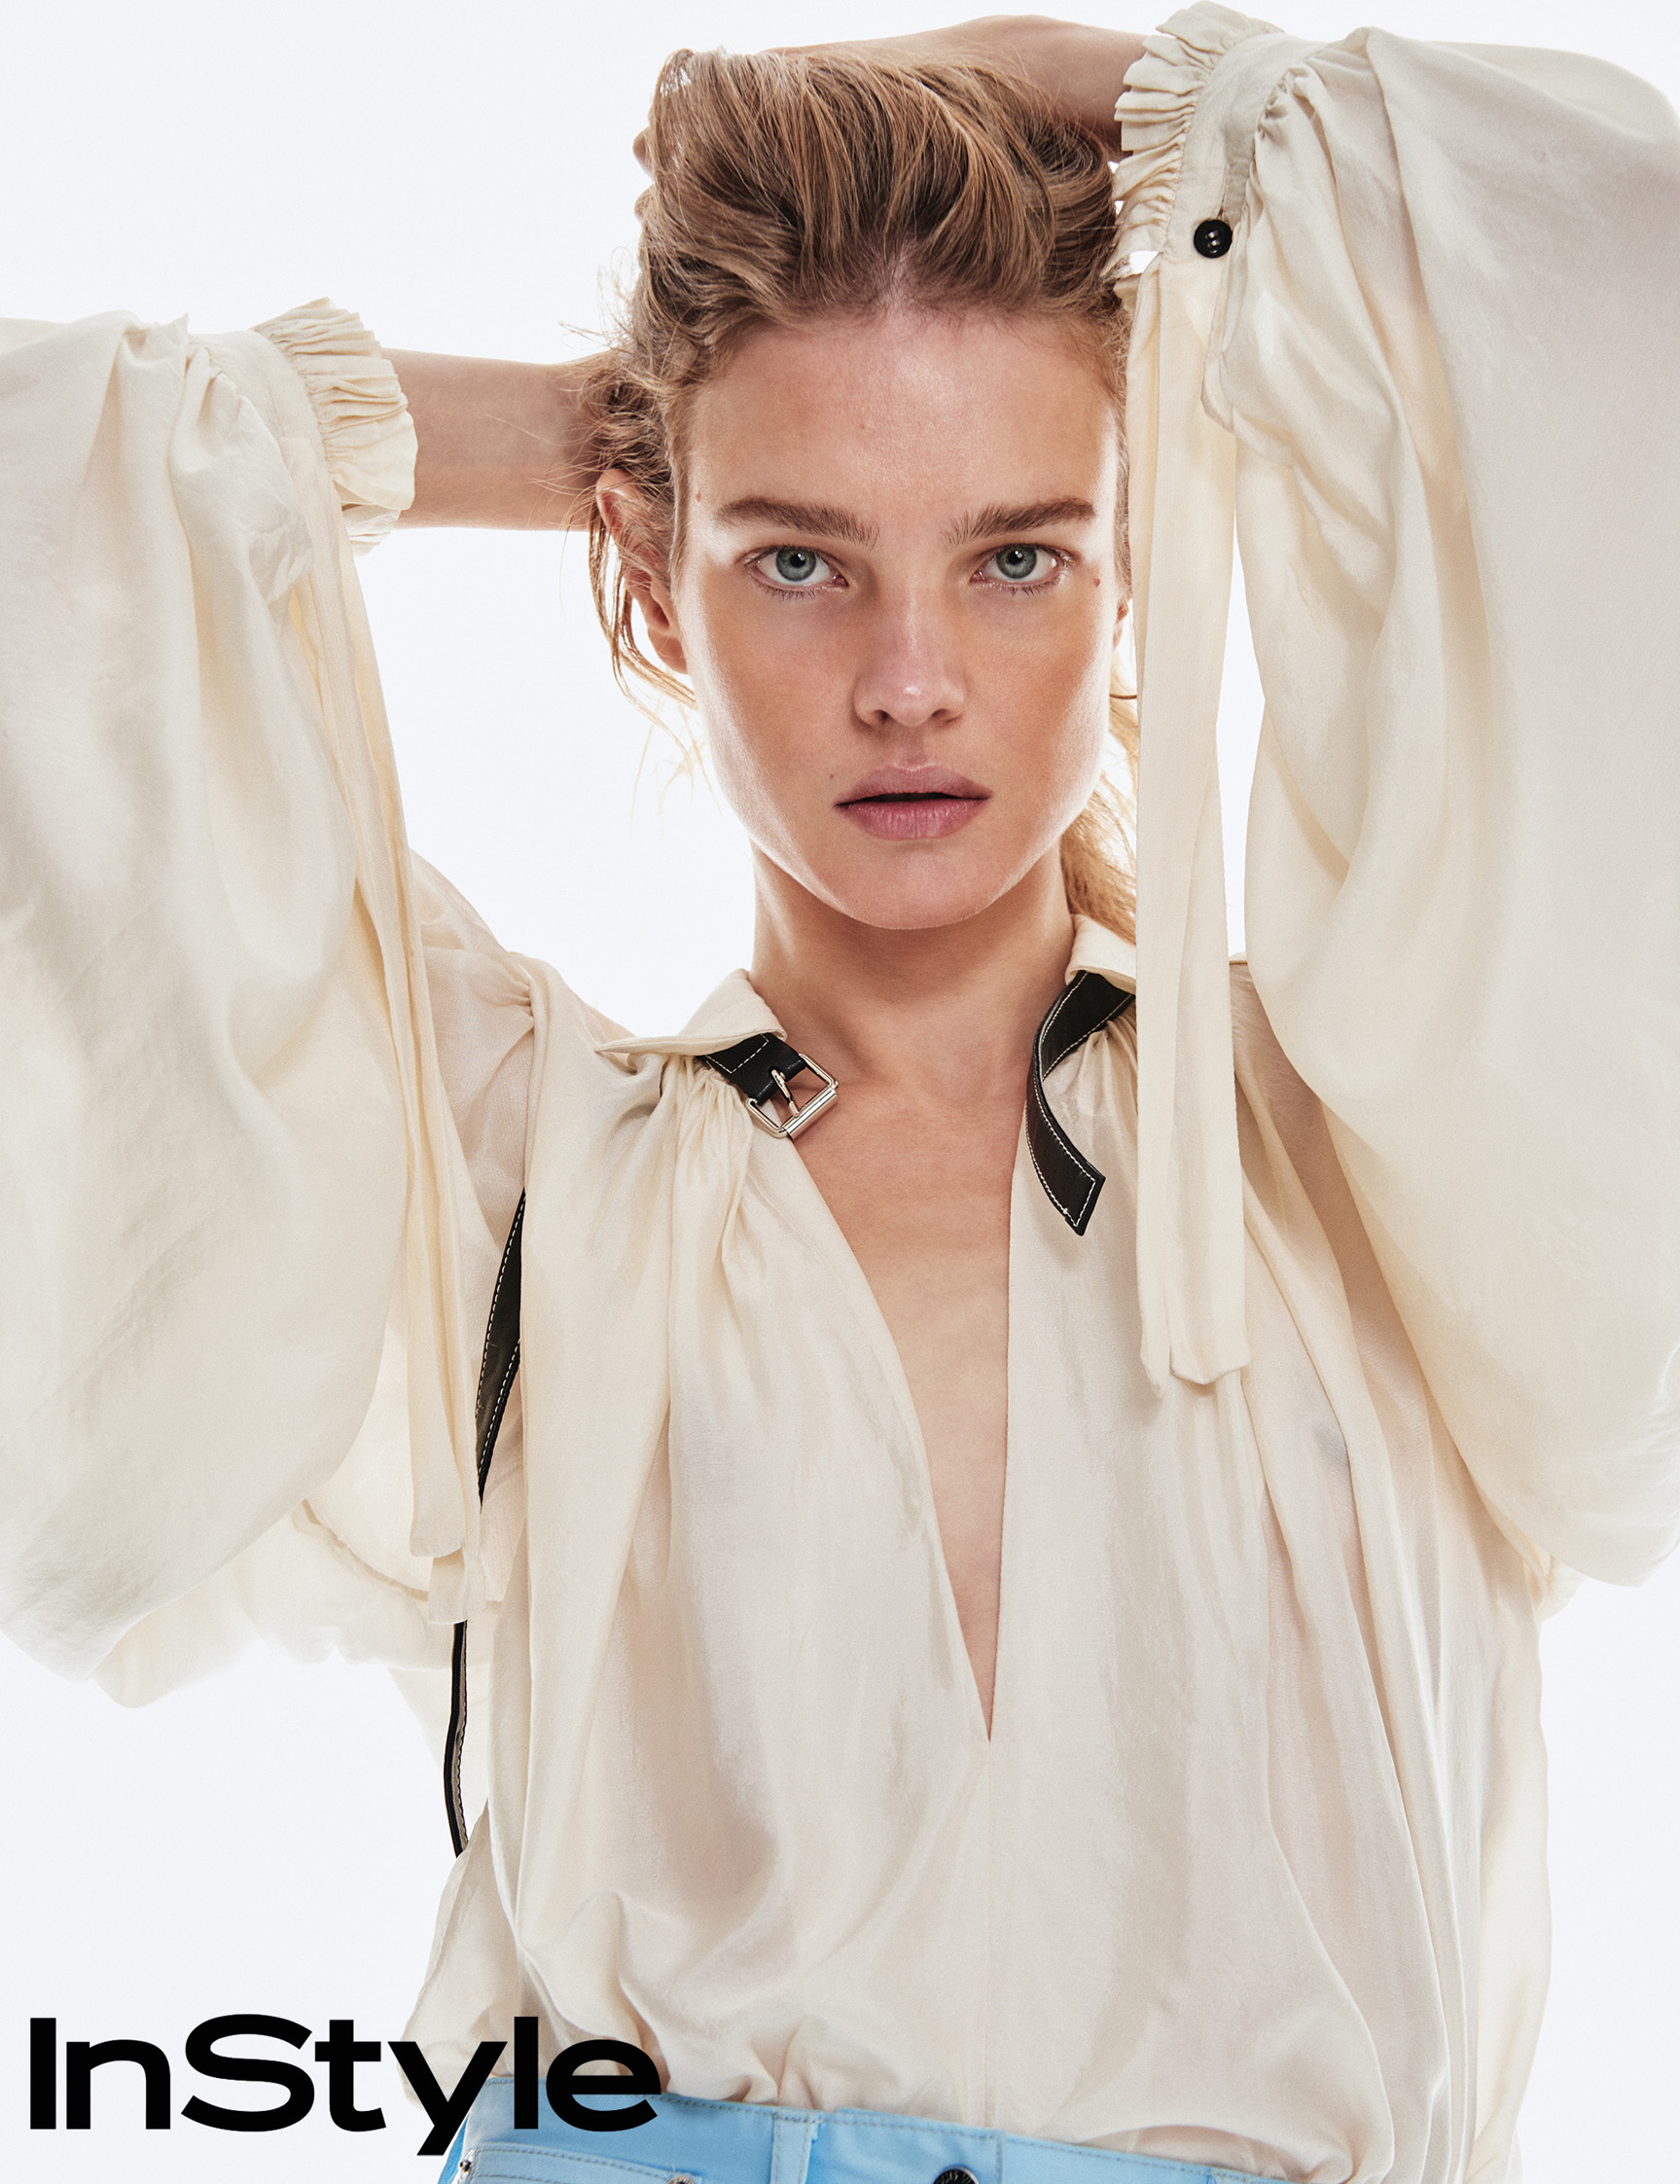 Наталья Водянова / Natalia Vodianova by Chris Colls - InStyle march 2018